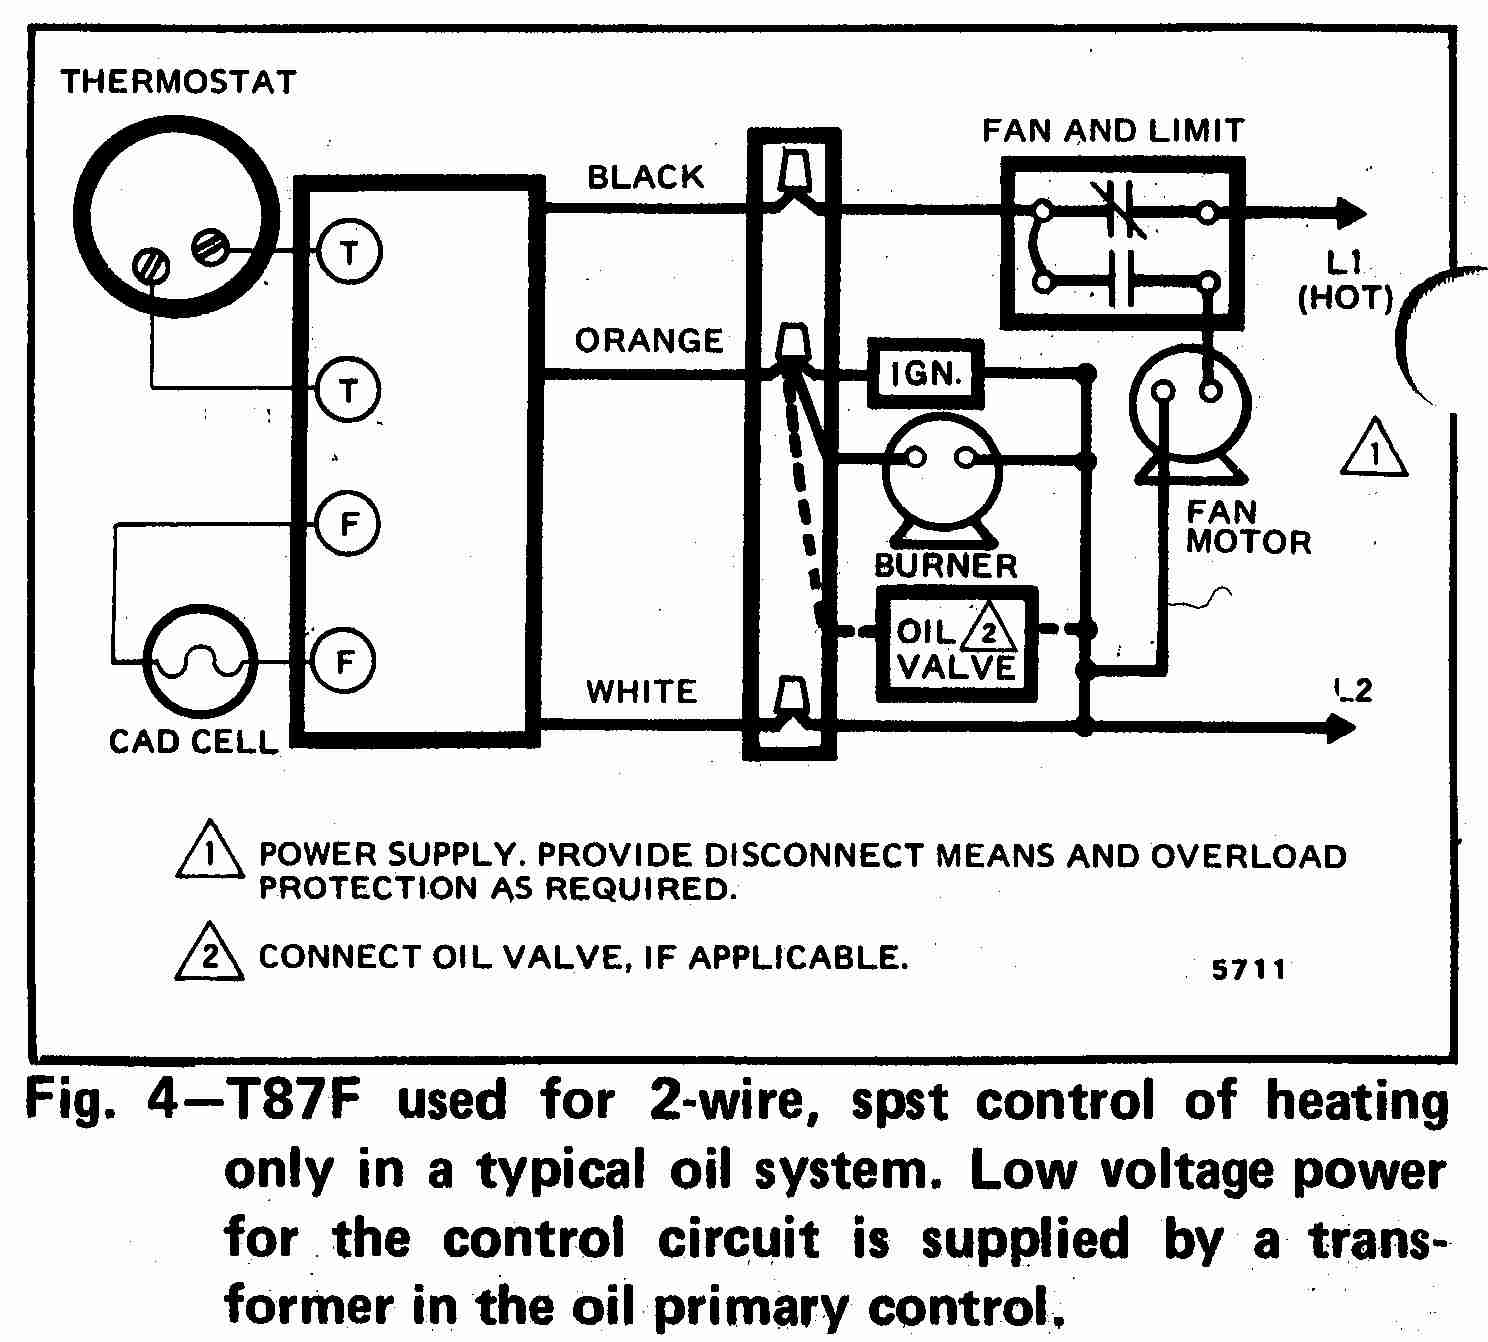 Hvac Wiring Diagram Data Air Compressor Capacitor